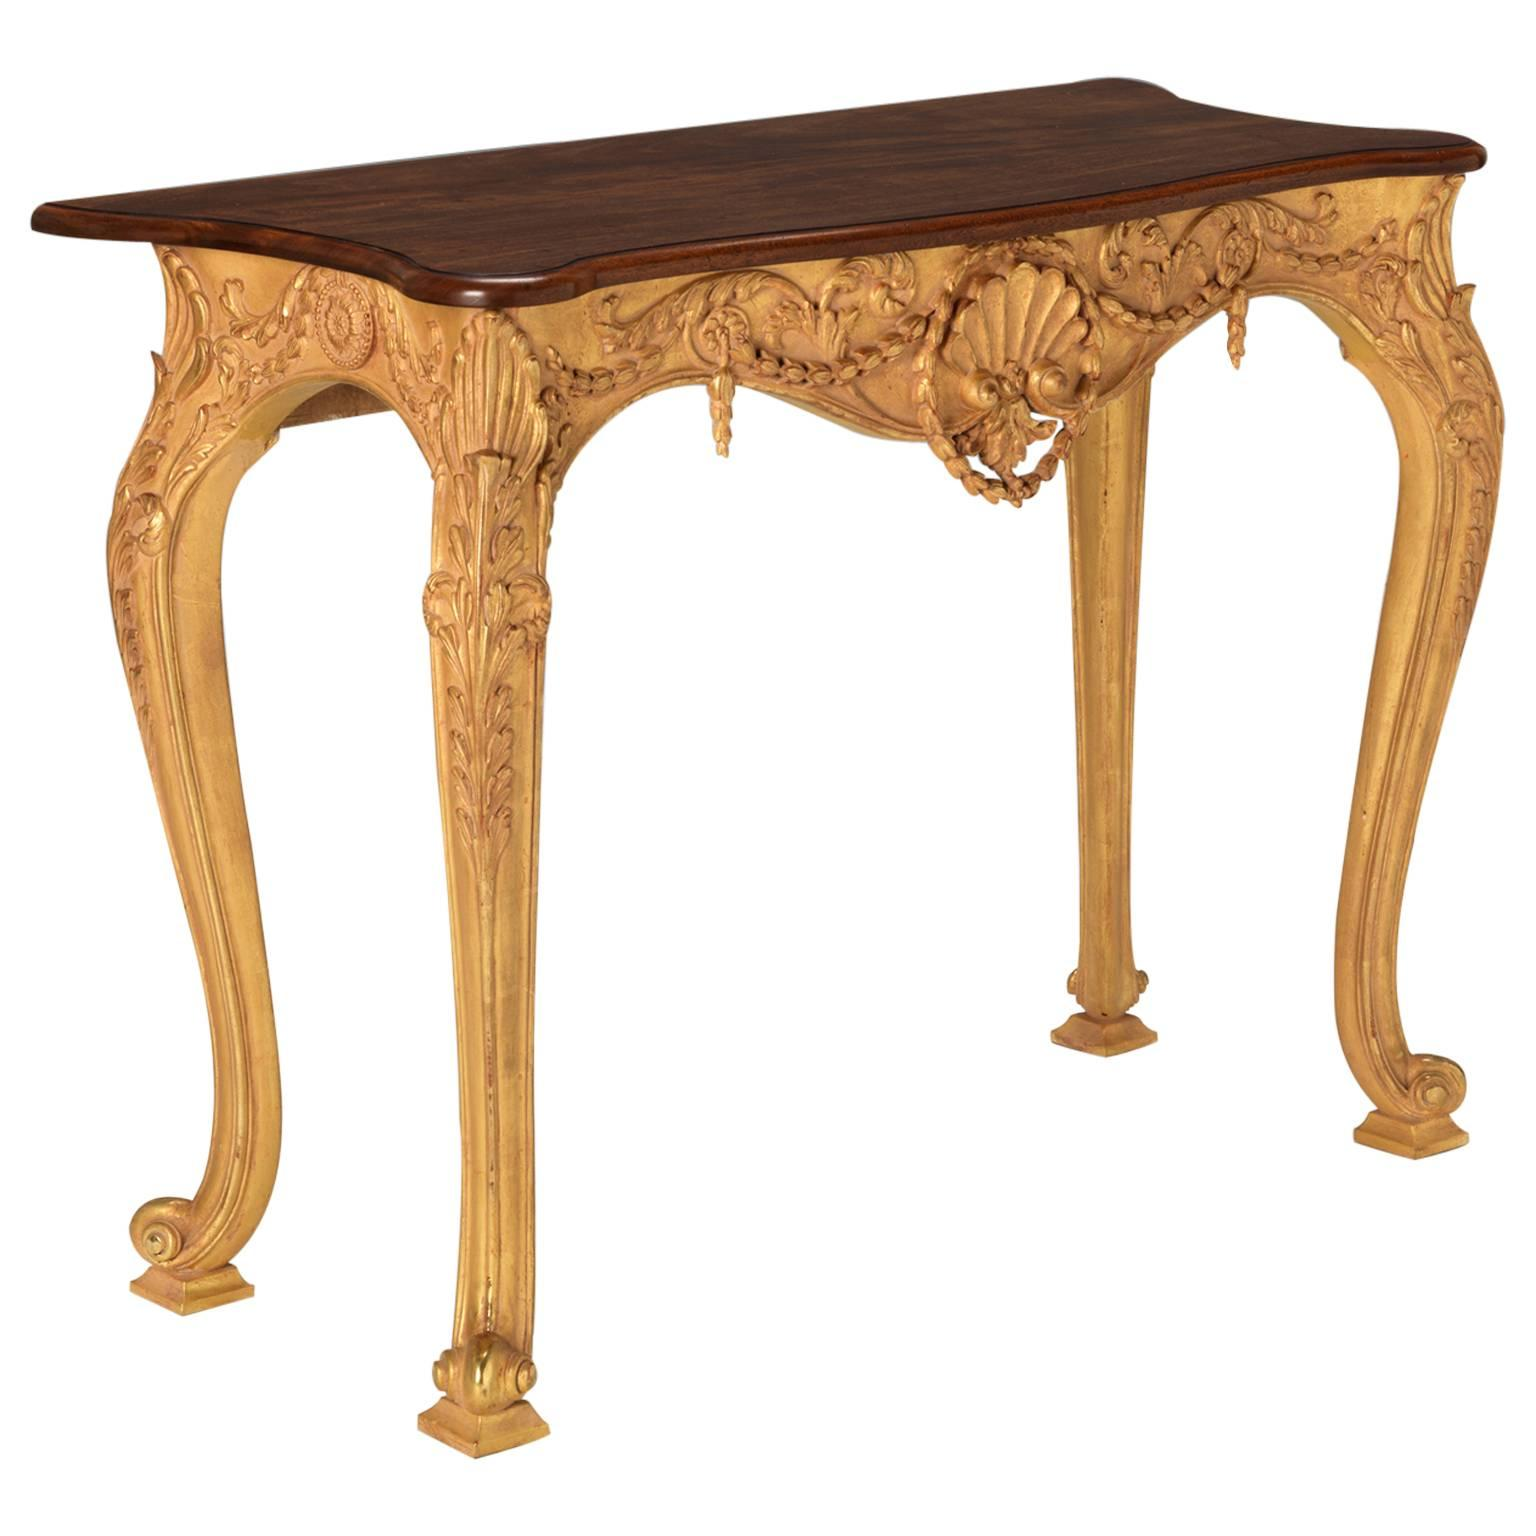 Serpentine Console Table in the manner of Robert Adam